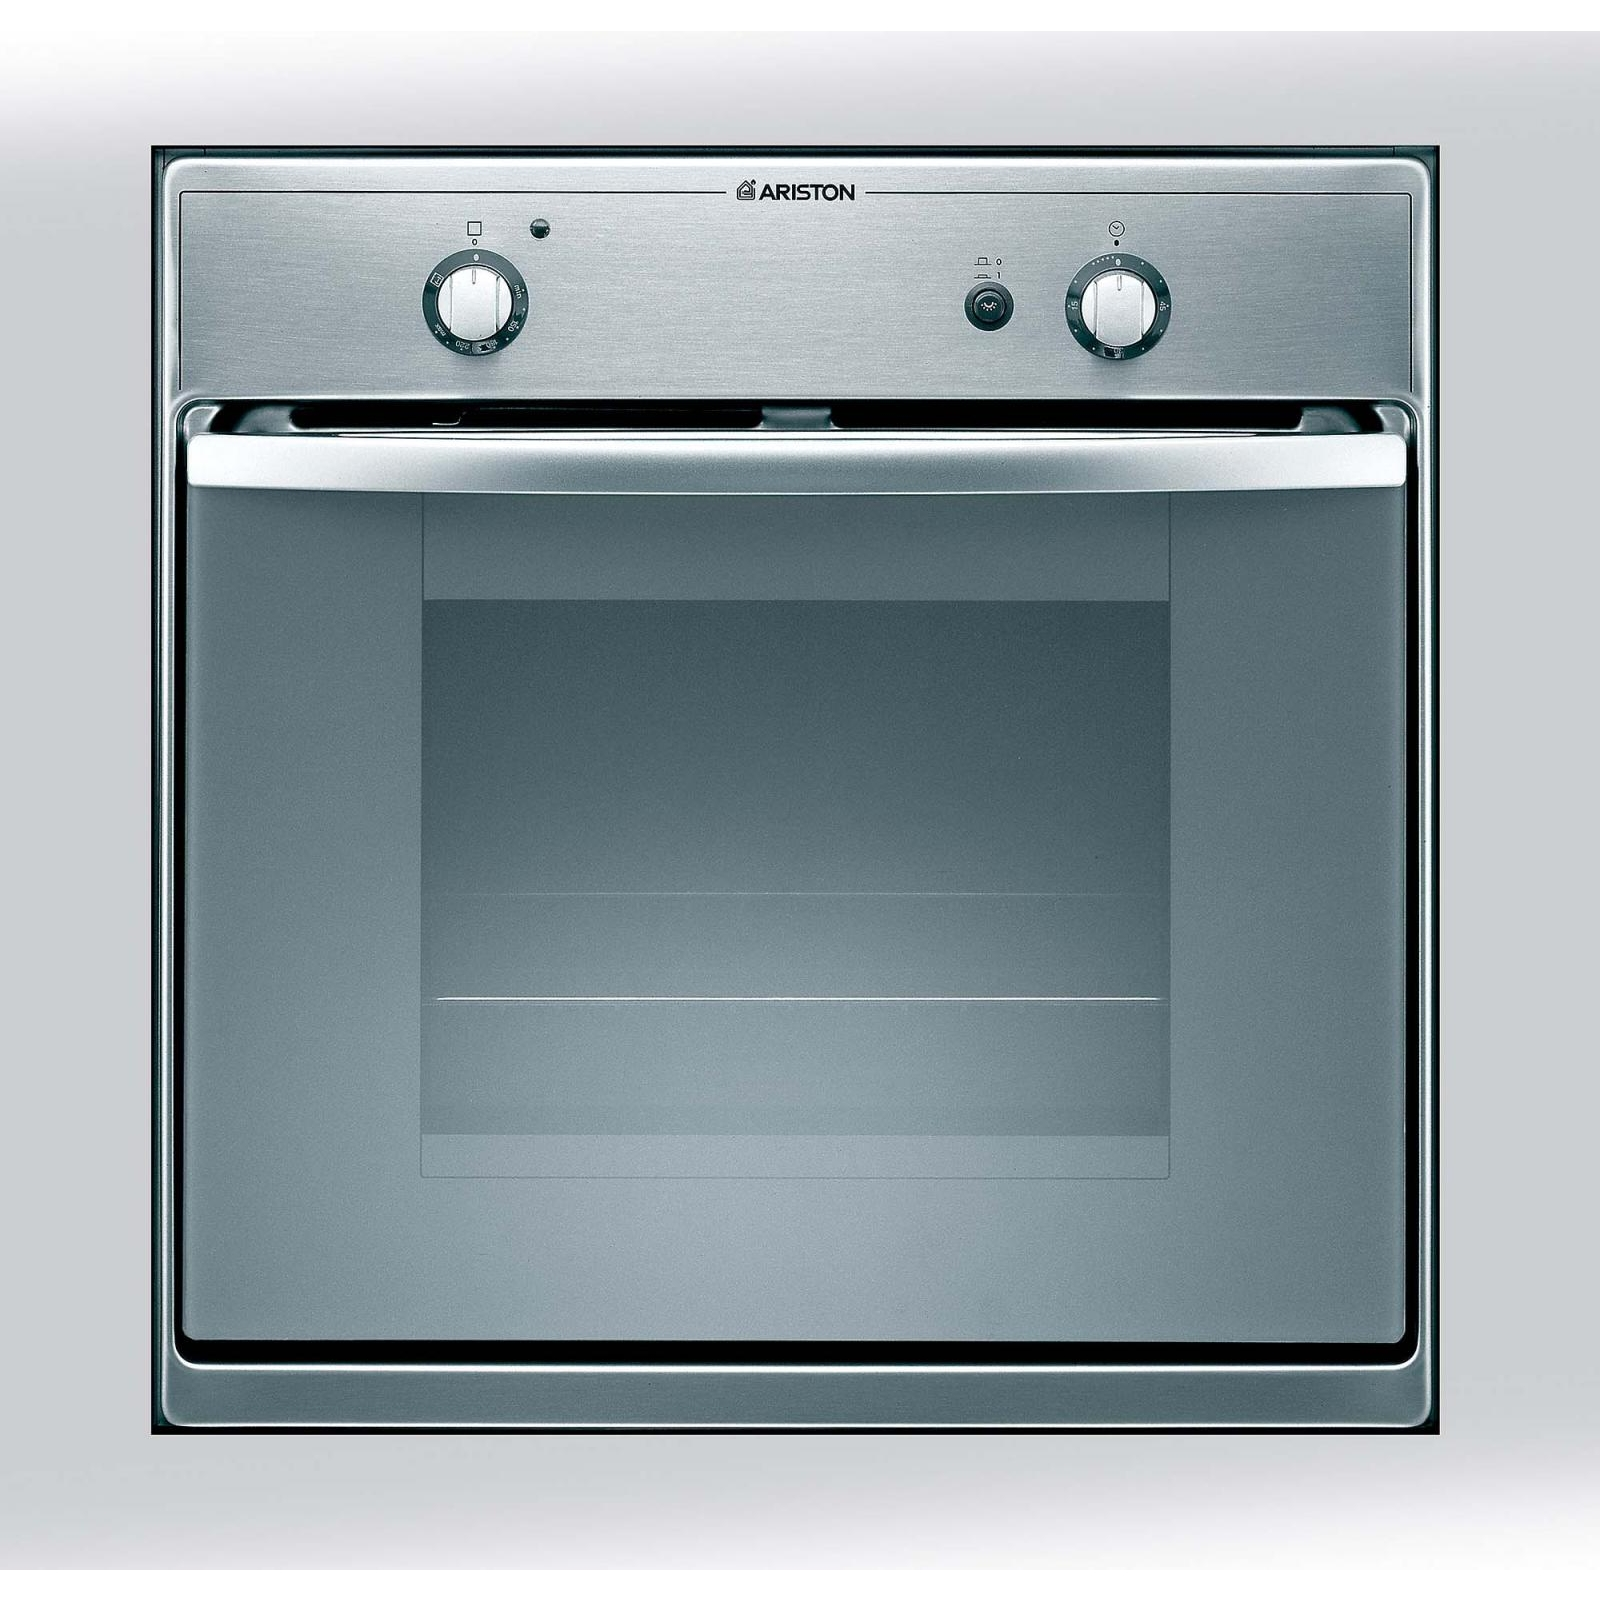 Инструкция По Использованию Духовки Hotpoint - Ariston 850